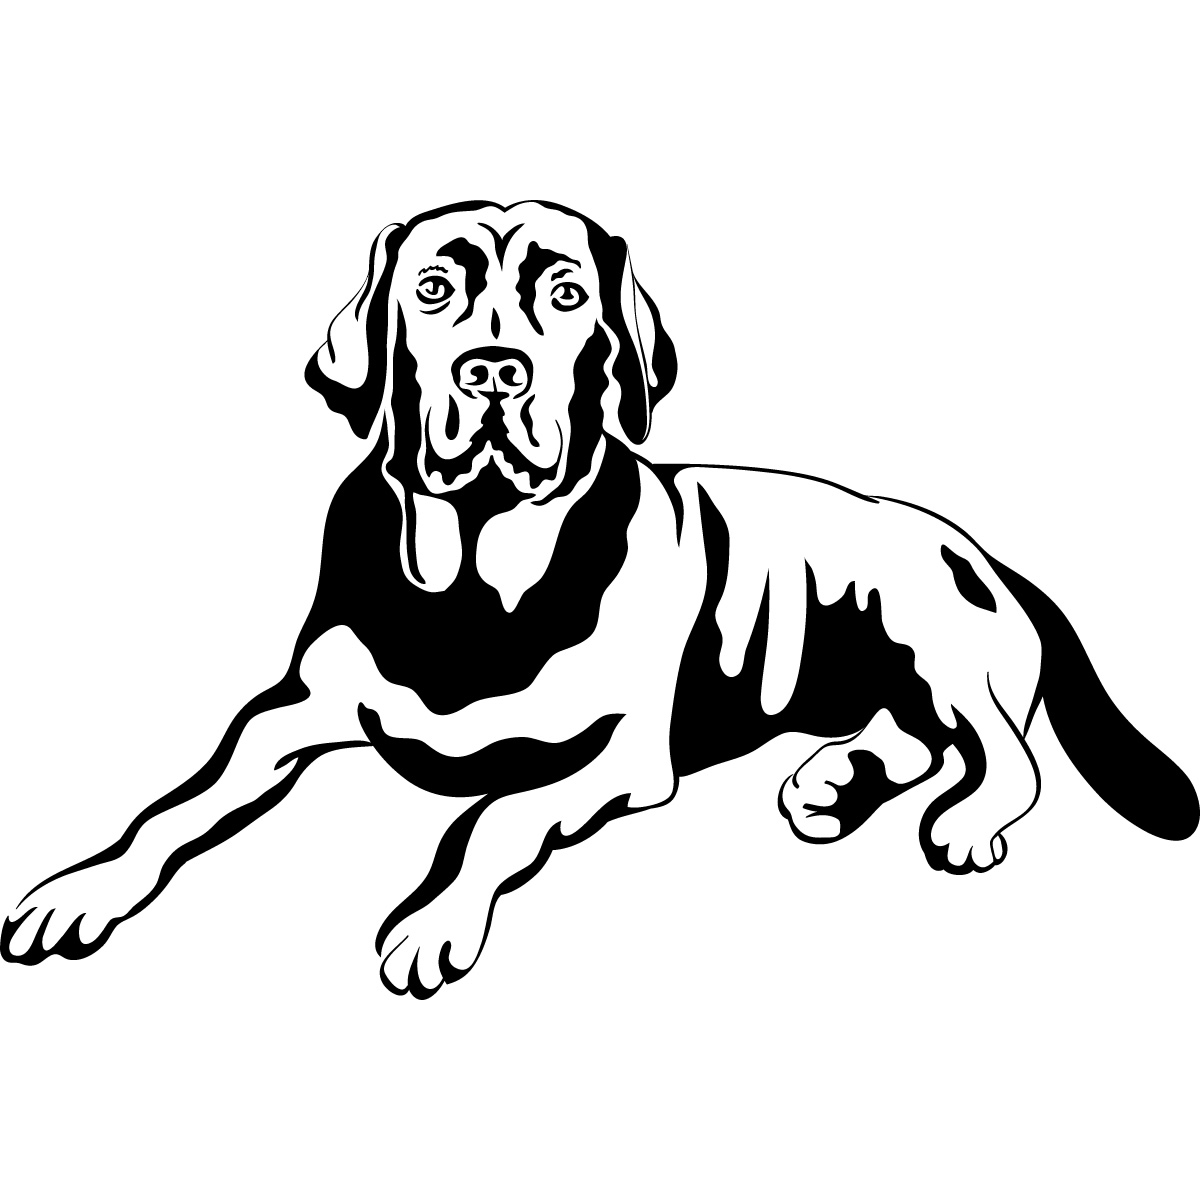 labrador colouring pages labrador retriever by kangaleer kennels on deviantart pages labrador colouring